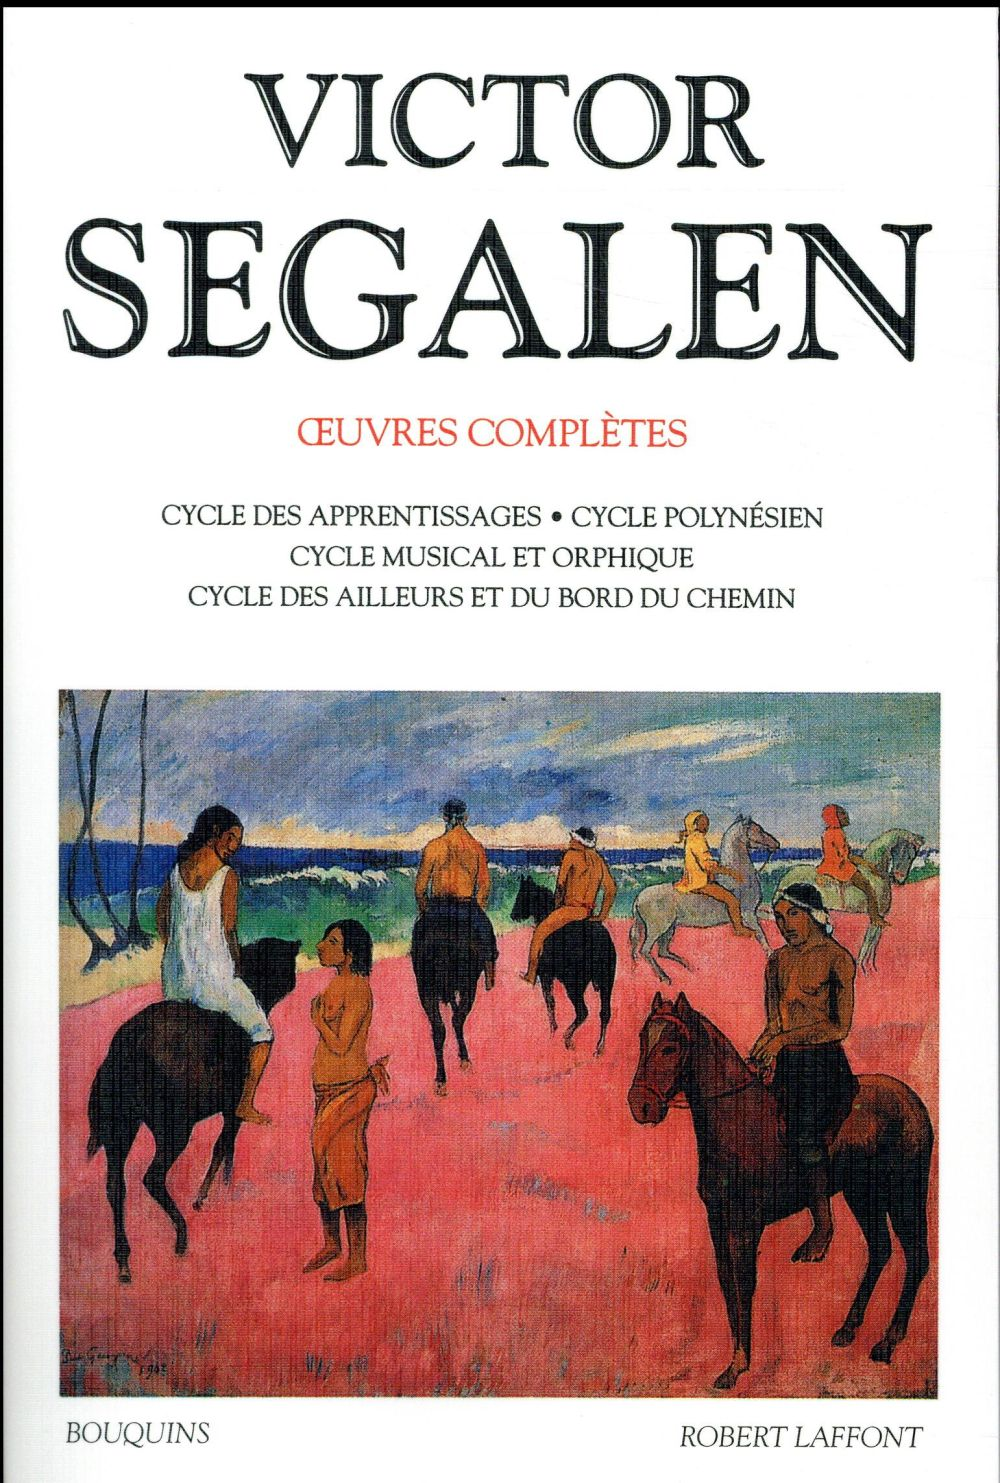 Victor segalen t.1 ; oeuvres complètes